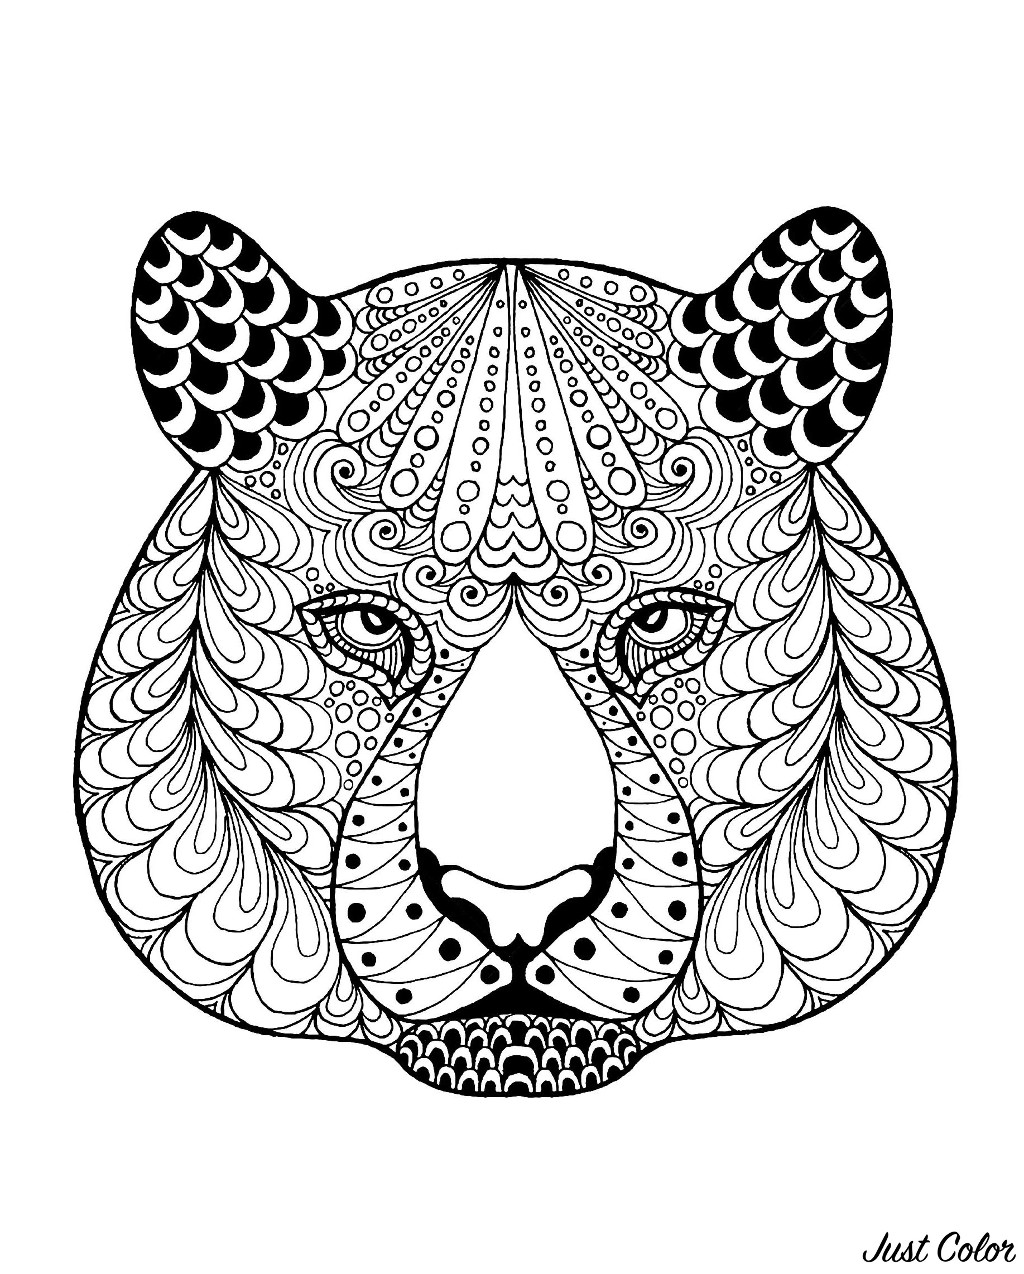 Simple Tigers coloring page to download for free